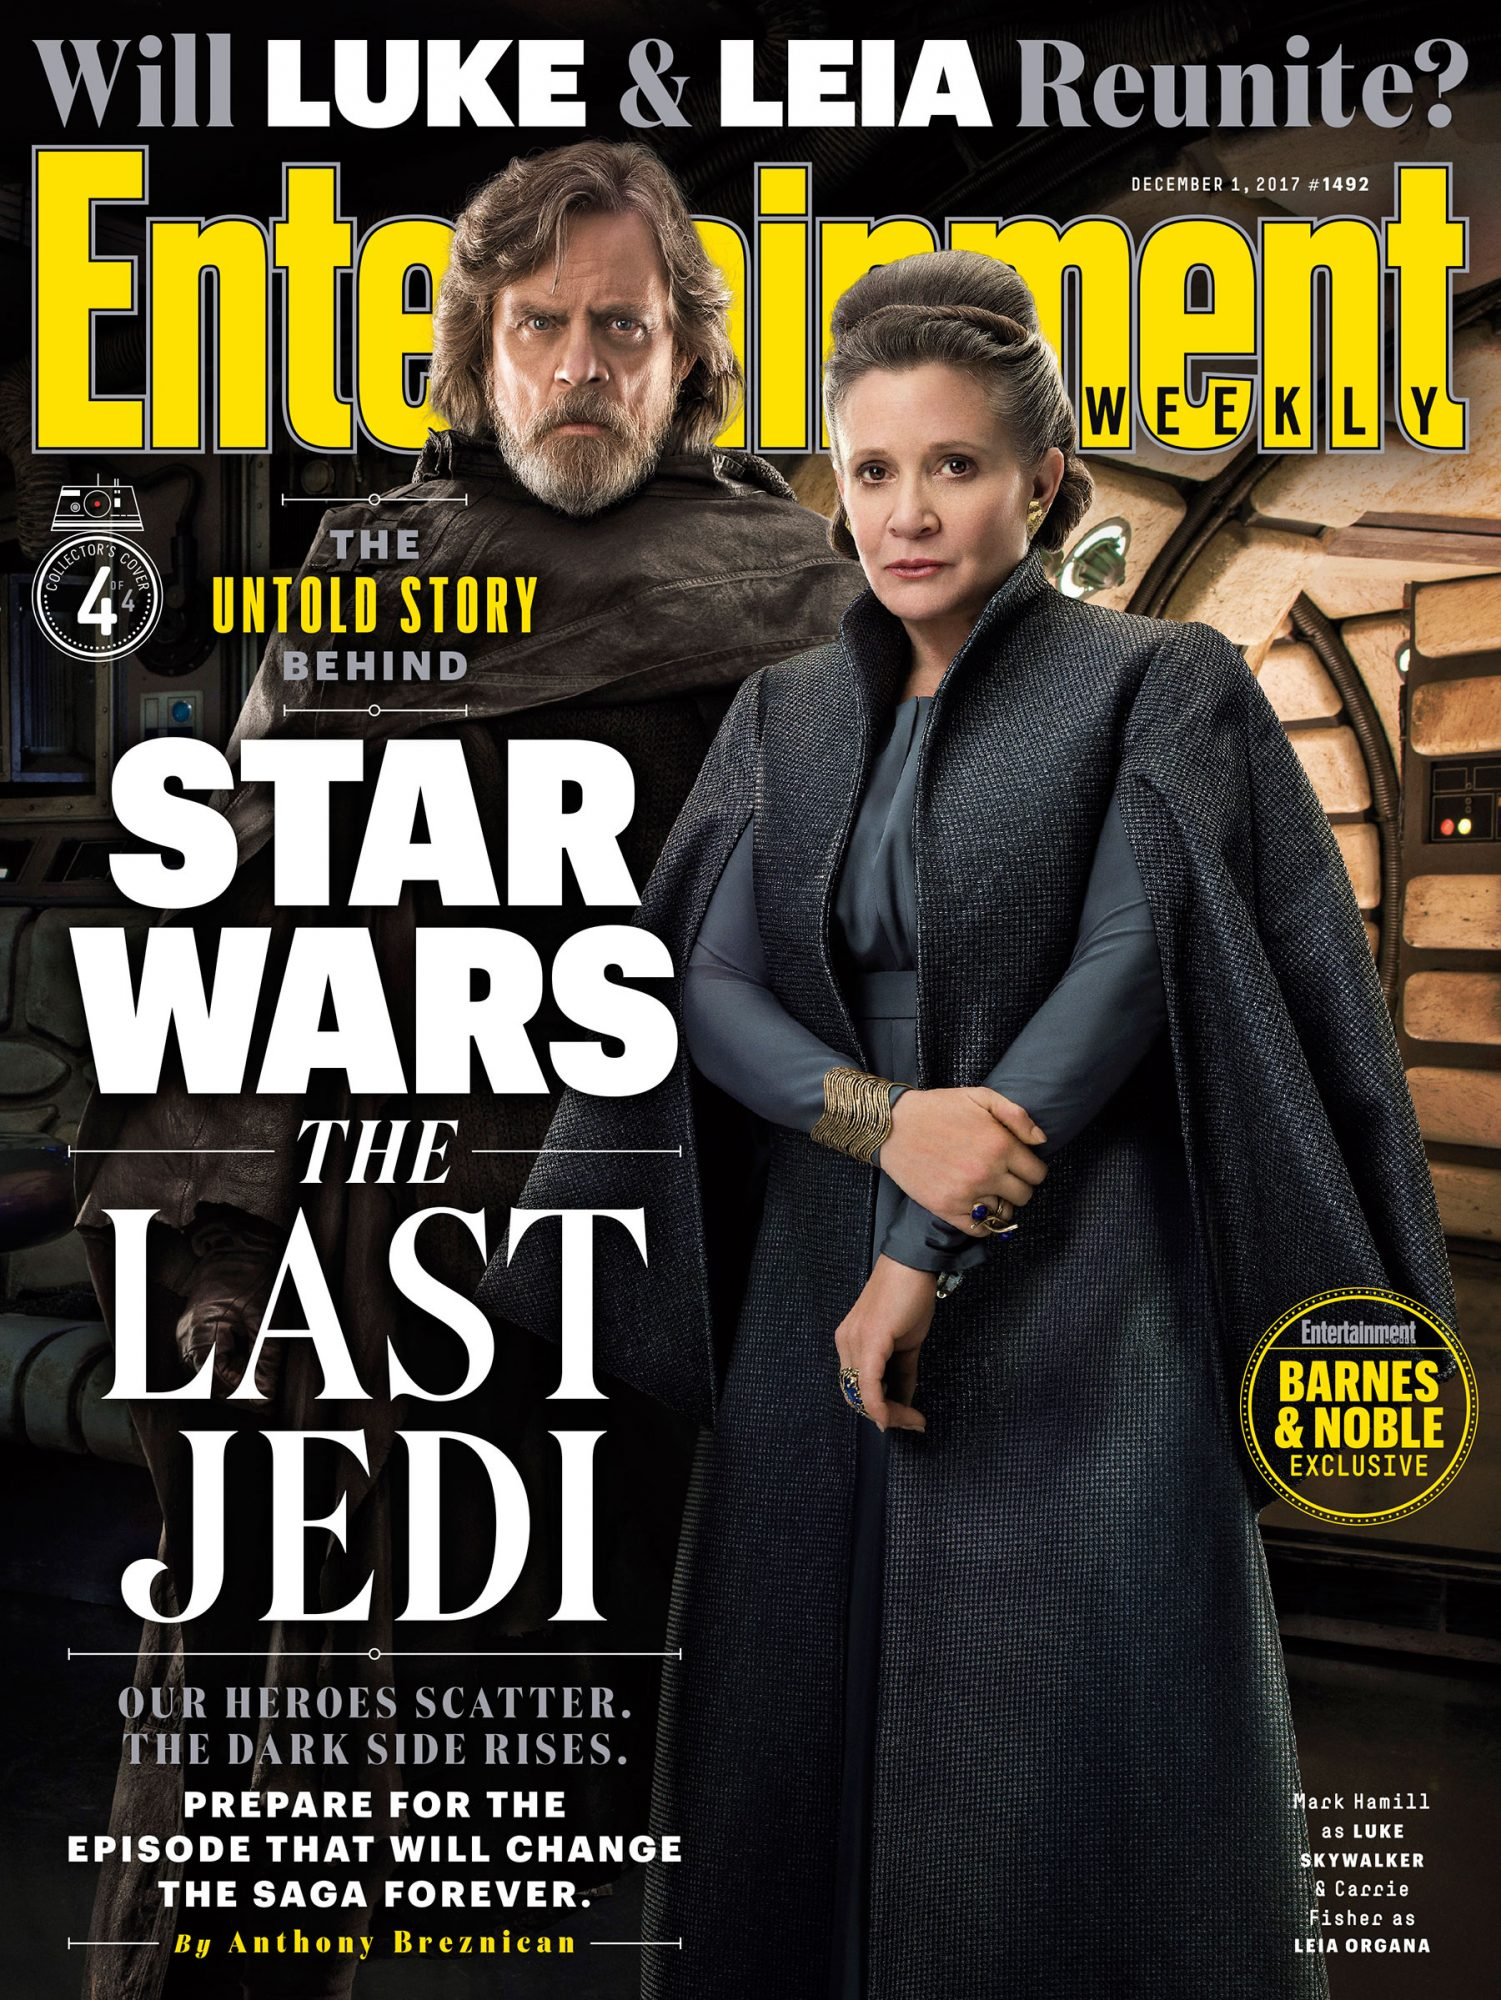 Entertainment Weekly December 1, 2017